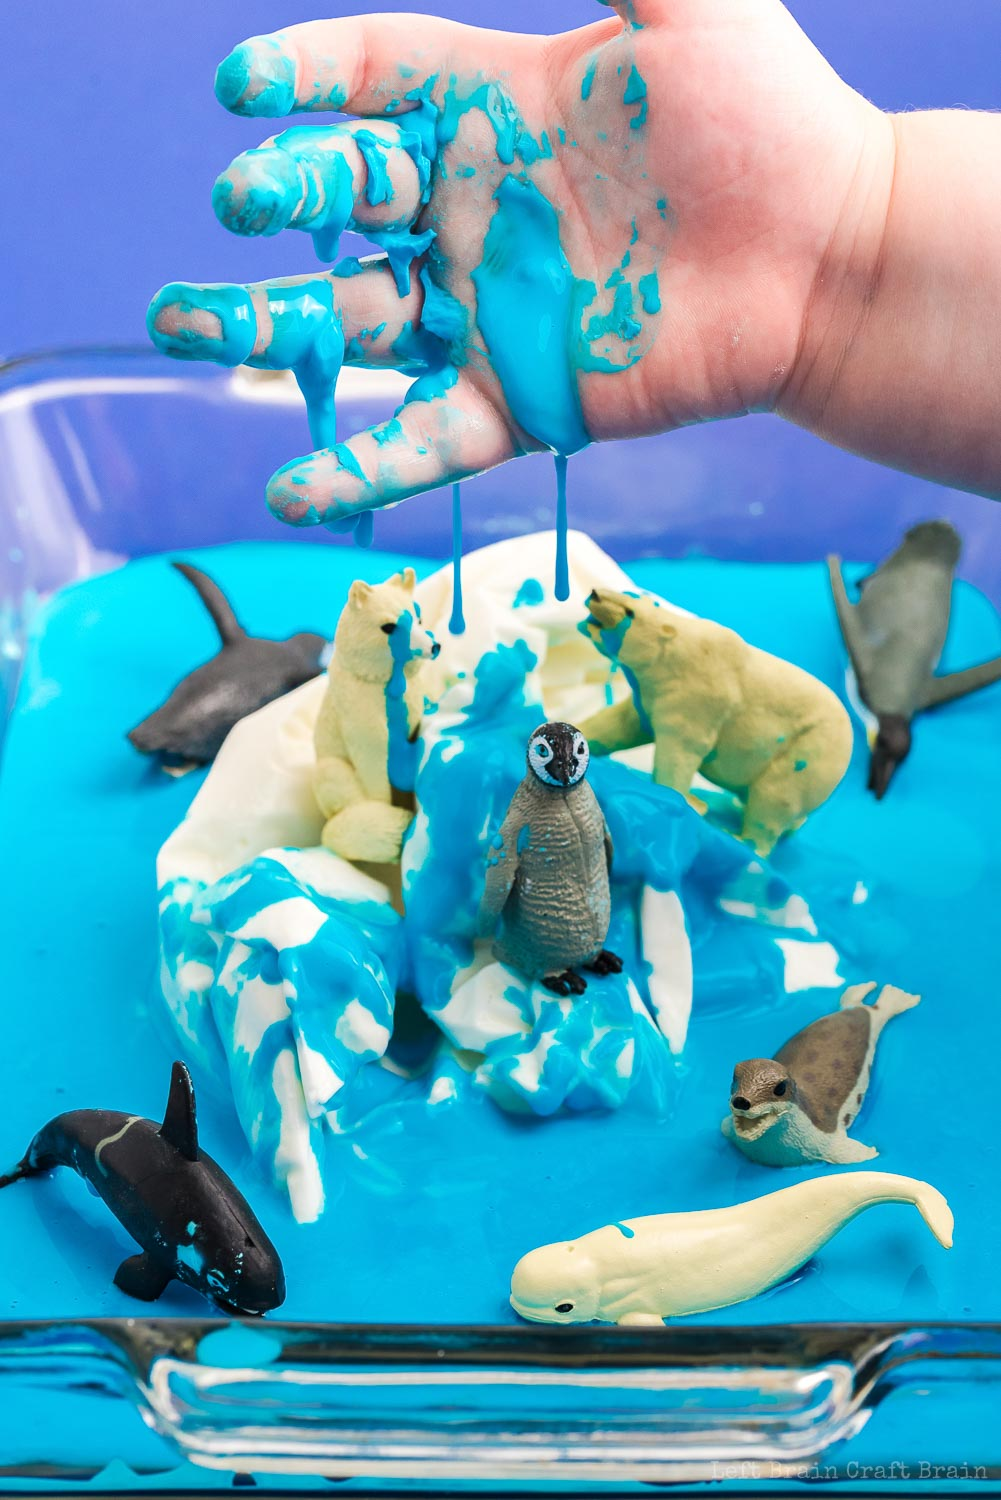 messy hand with blue oobleck over frozen oobleck iceberg with polar animal toys